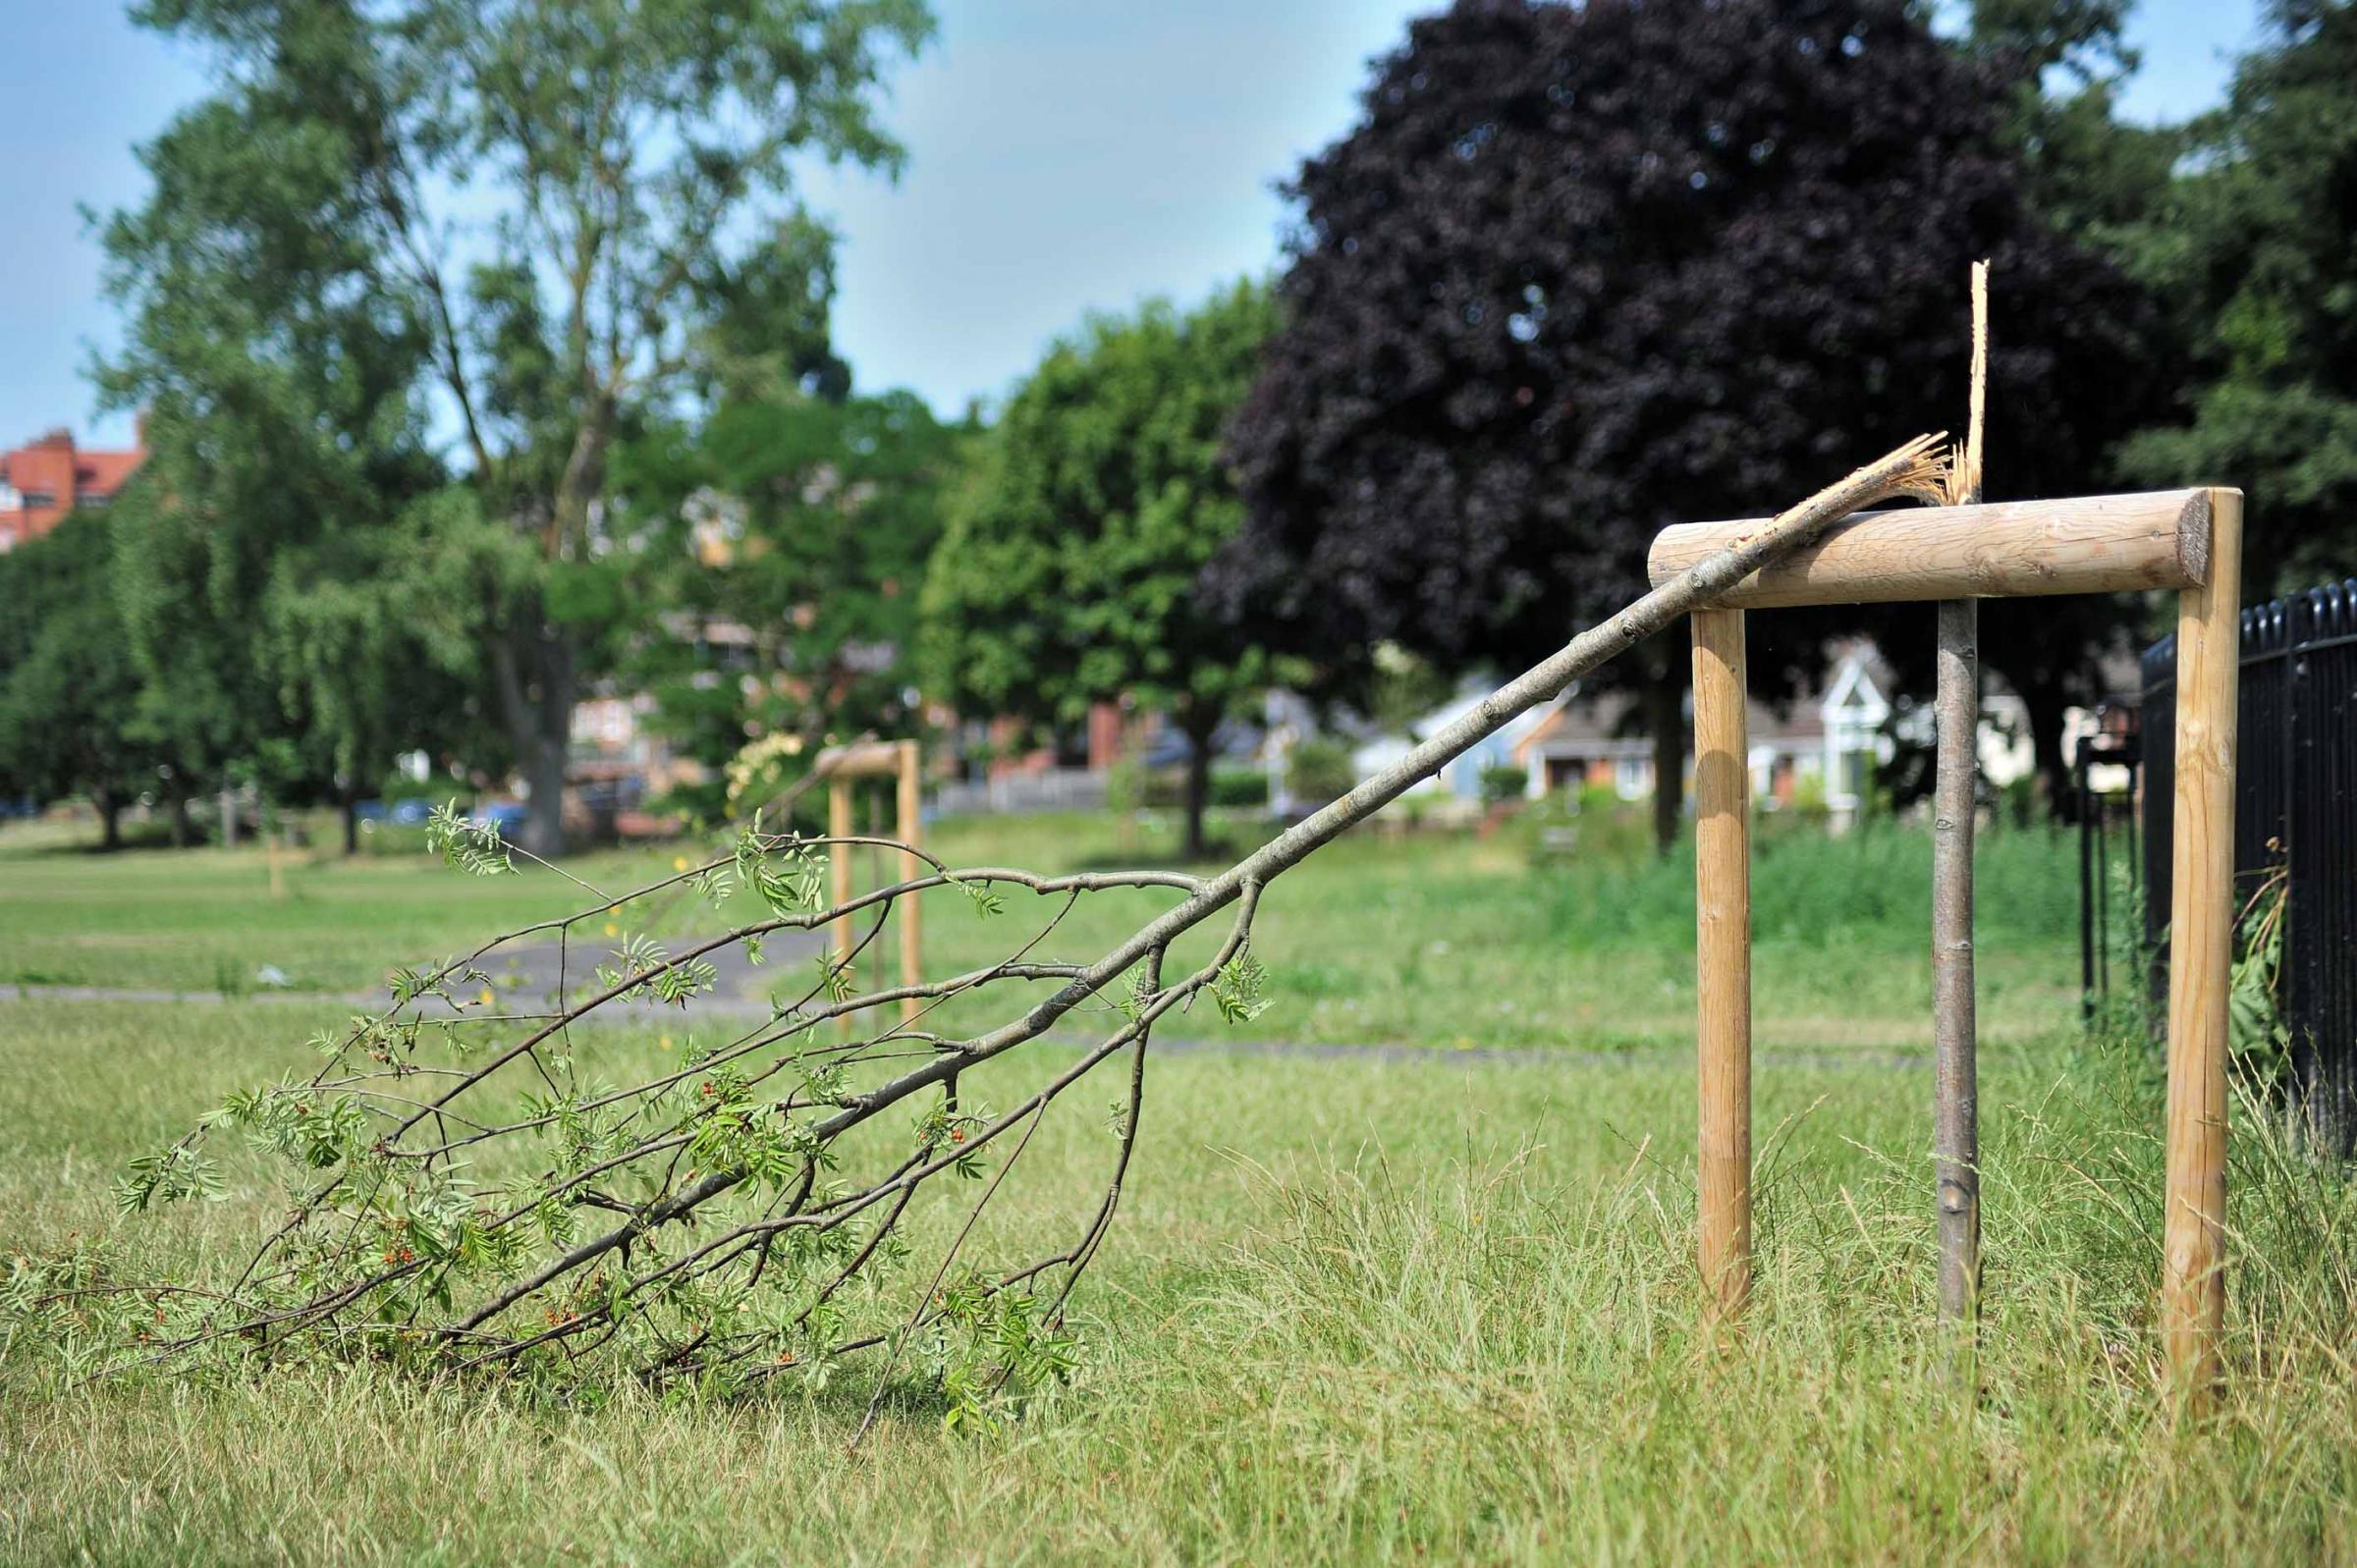 Young trees on Diglis playing fields were snapped by vandals